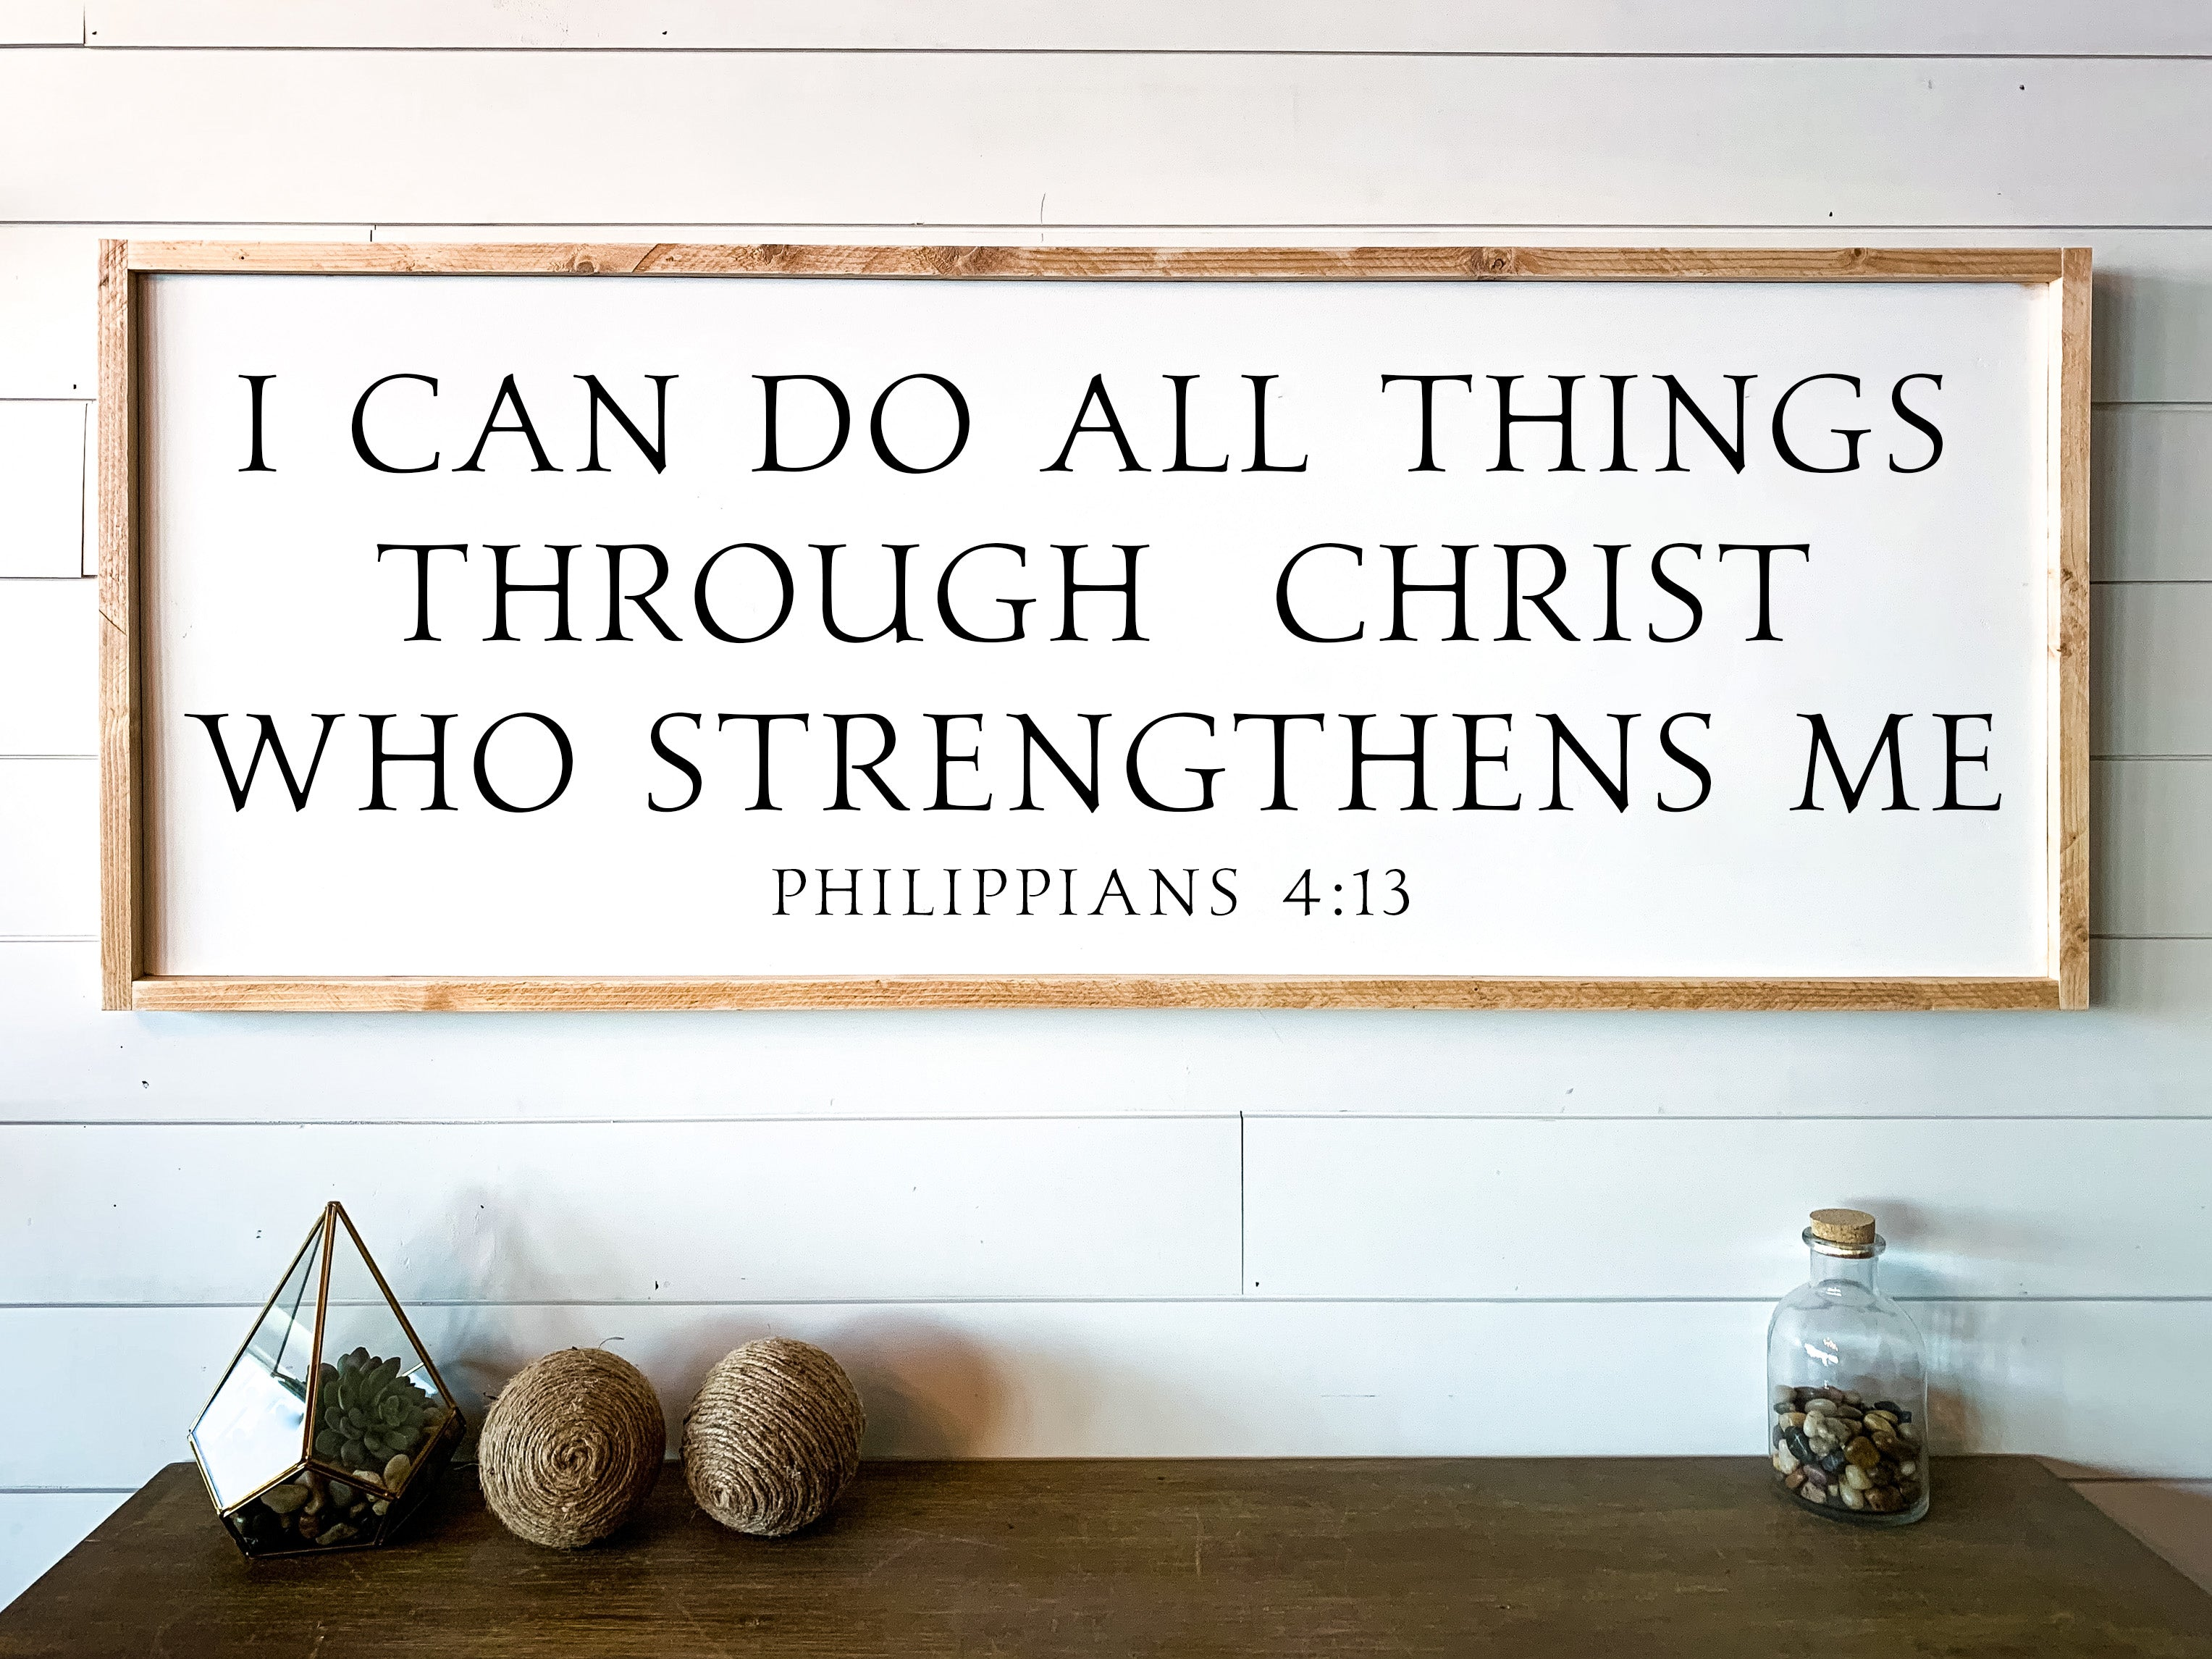 I Can Do All Things Through Christ Who Strengthens Me Large Framed Wood Sign